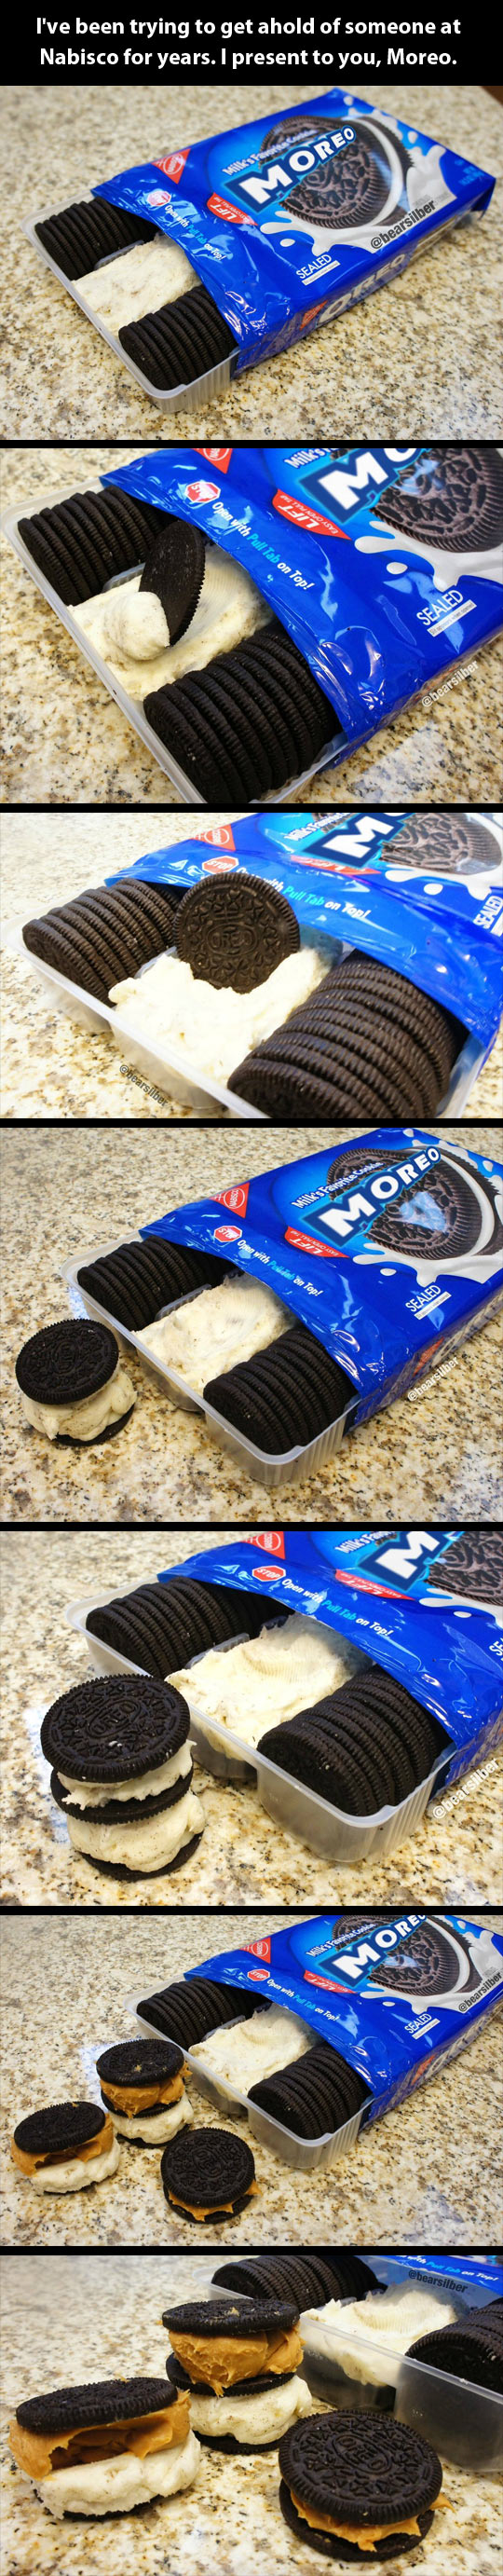 funny-picture-oreo-moreo